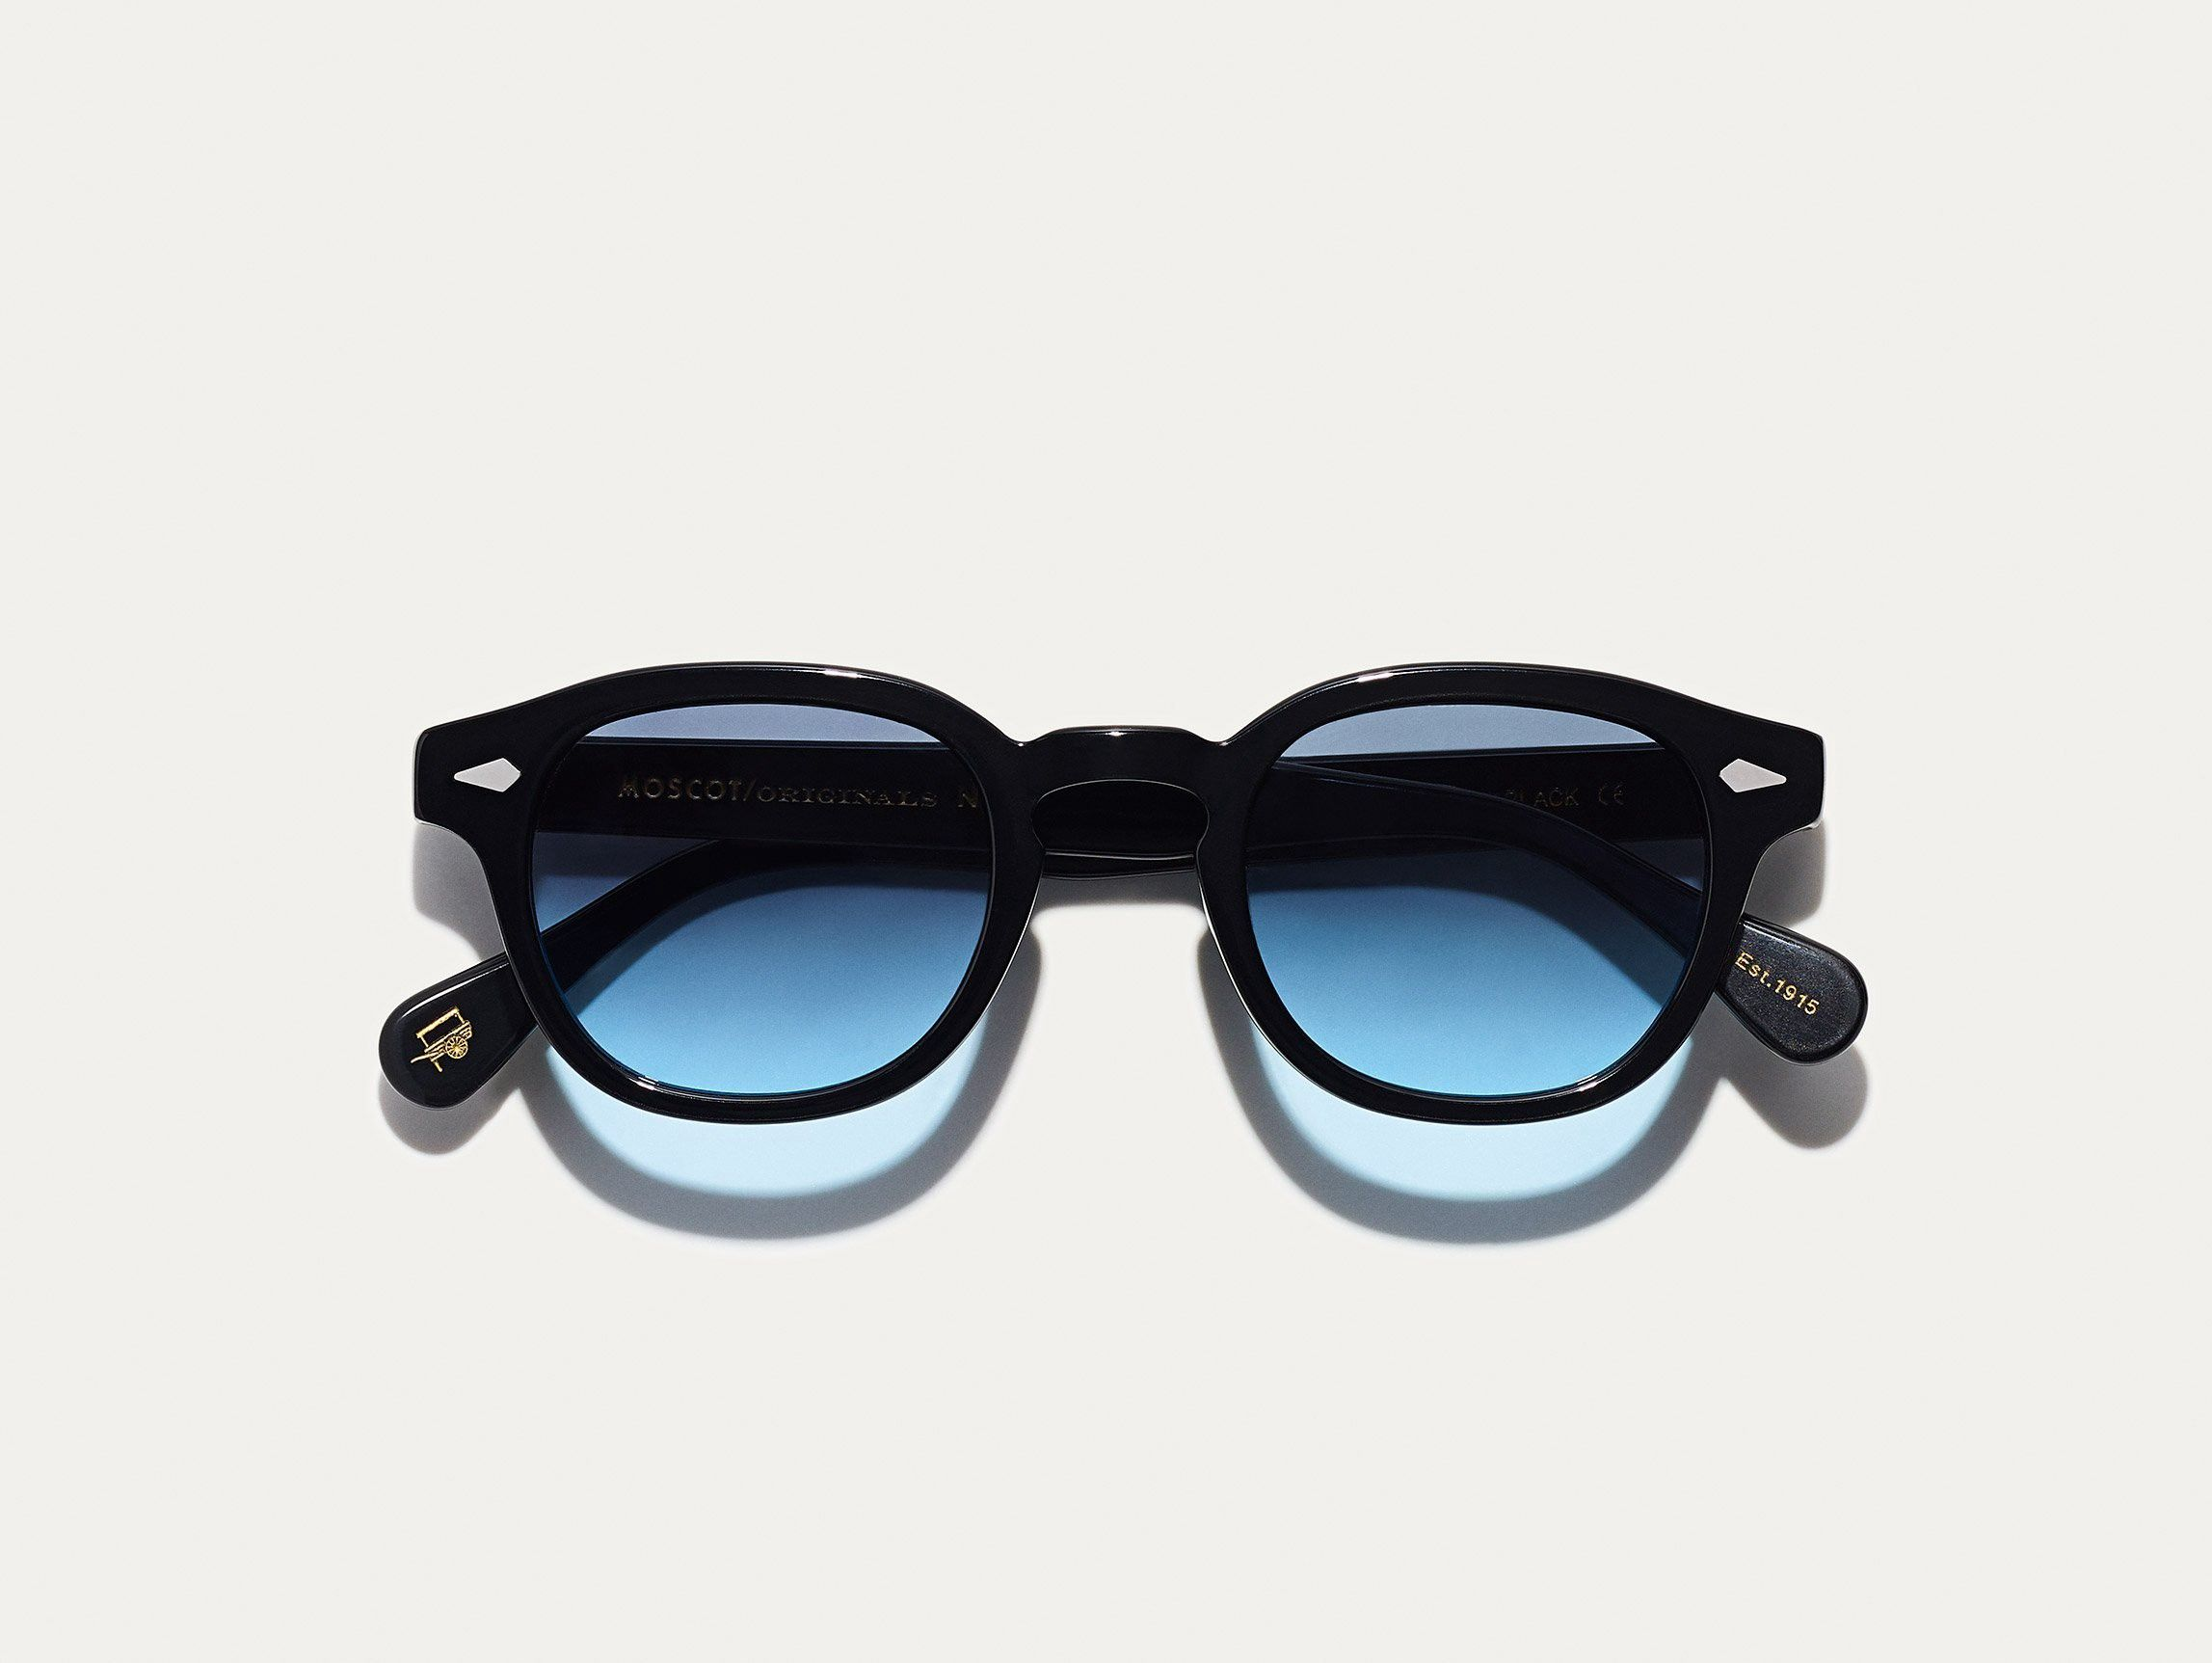 1b46a233ad7e Moscot Lemtosh Black With Denim Blue Tint - 44 in 2019   Products ...